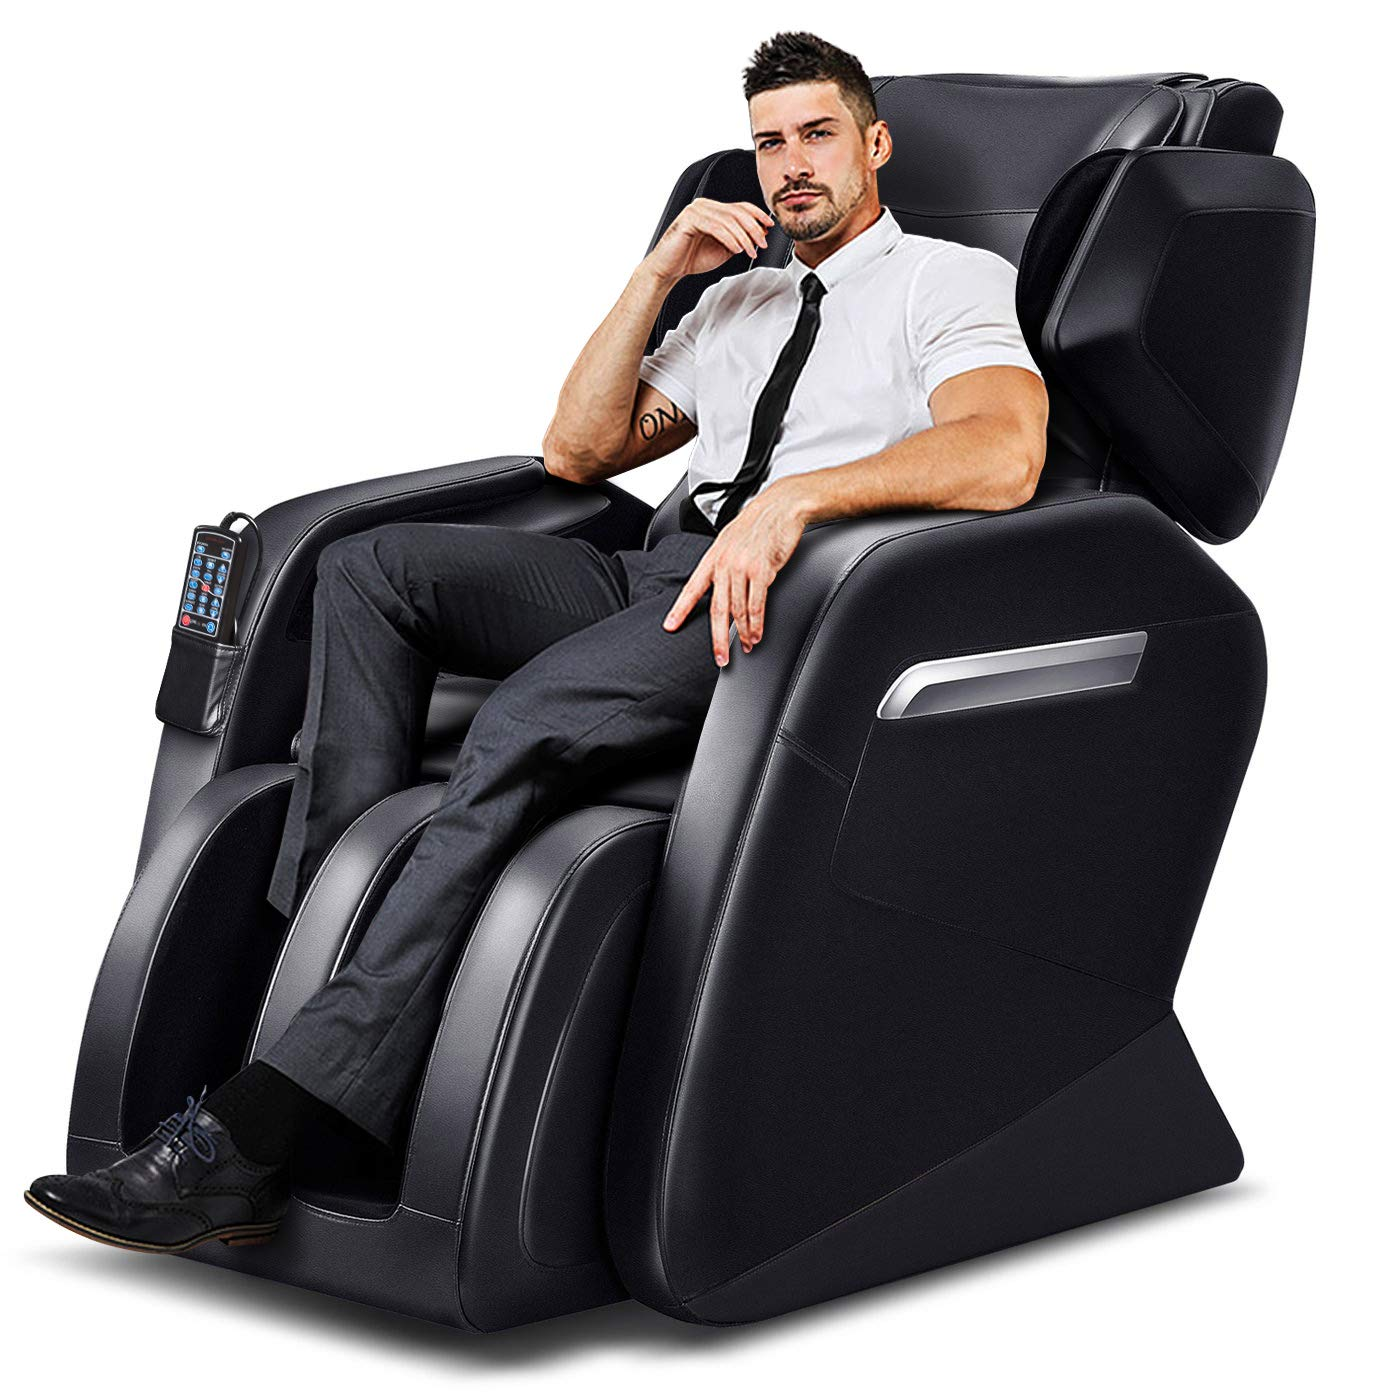 Gravity Massage Chair by Sinoluck